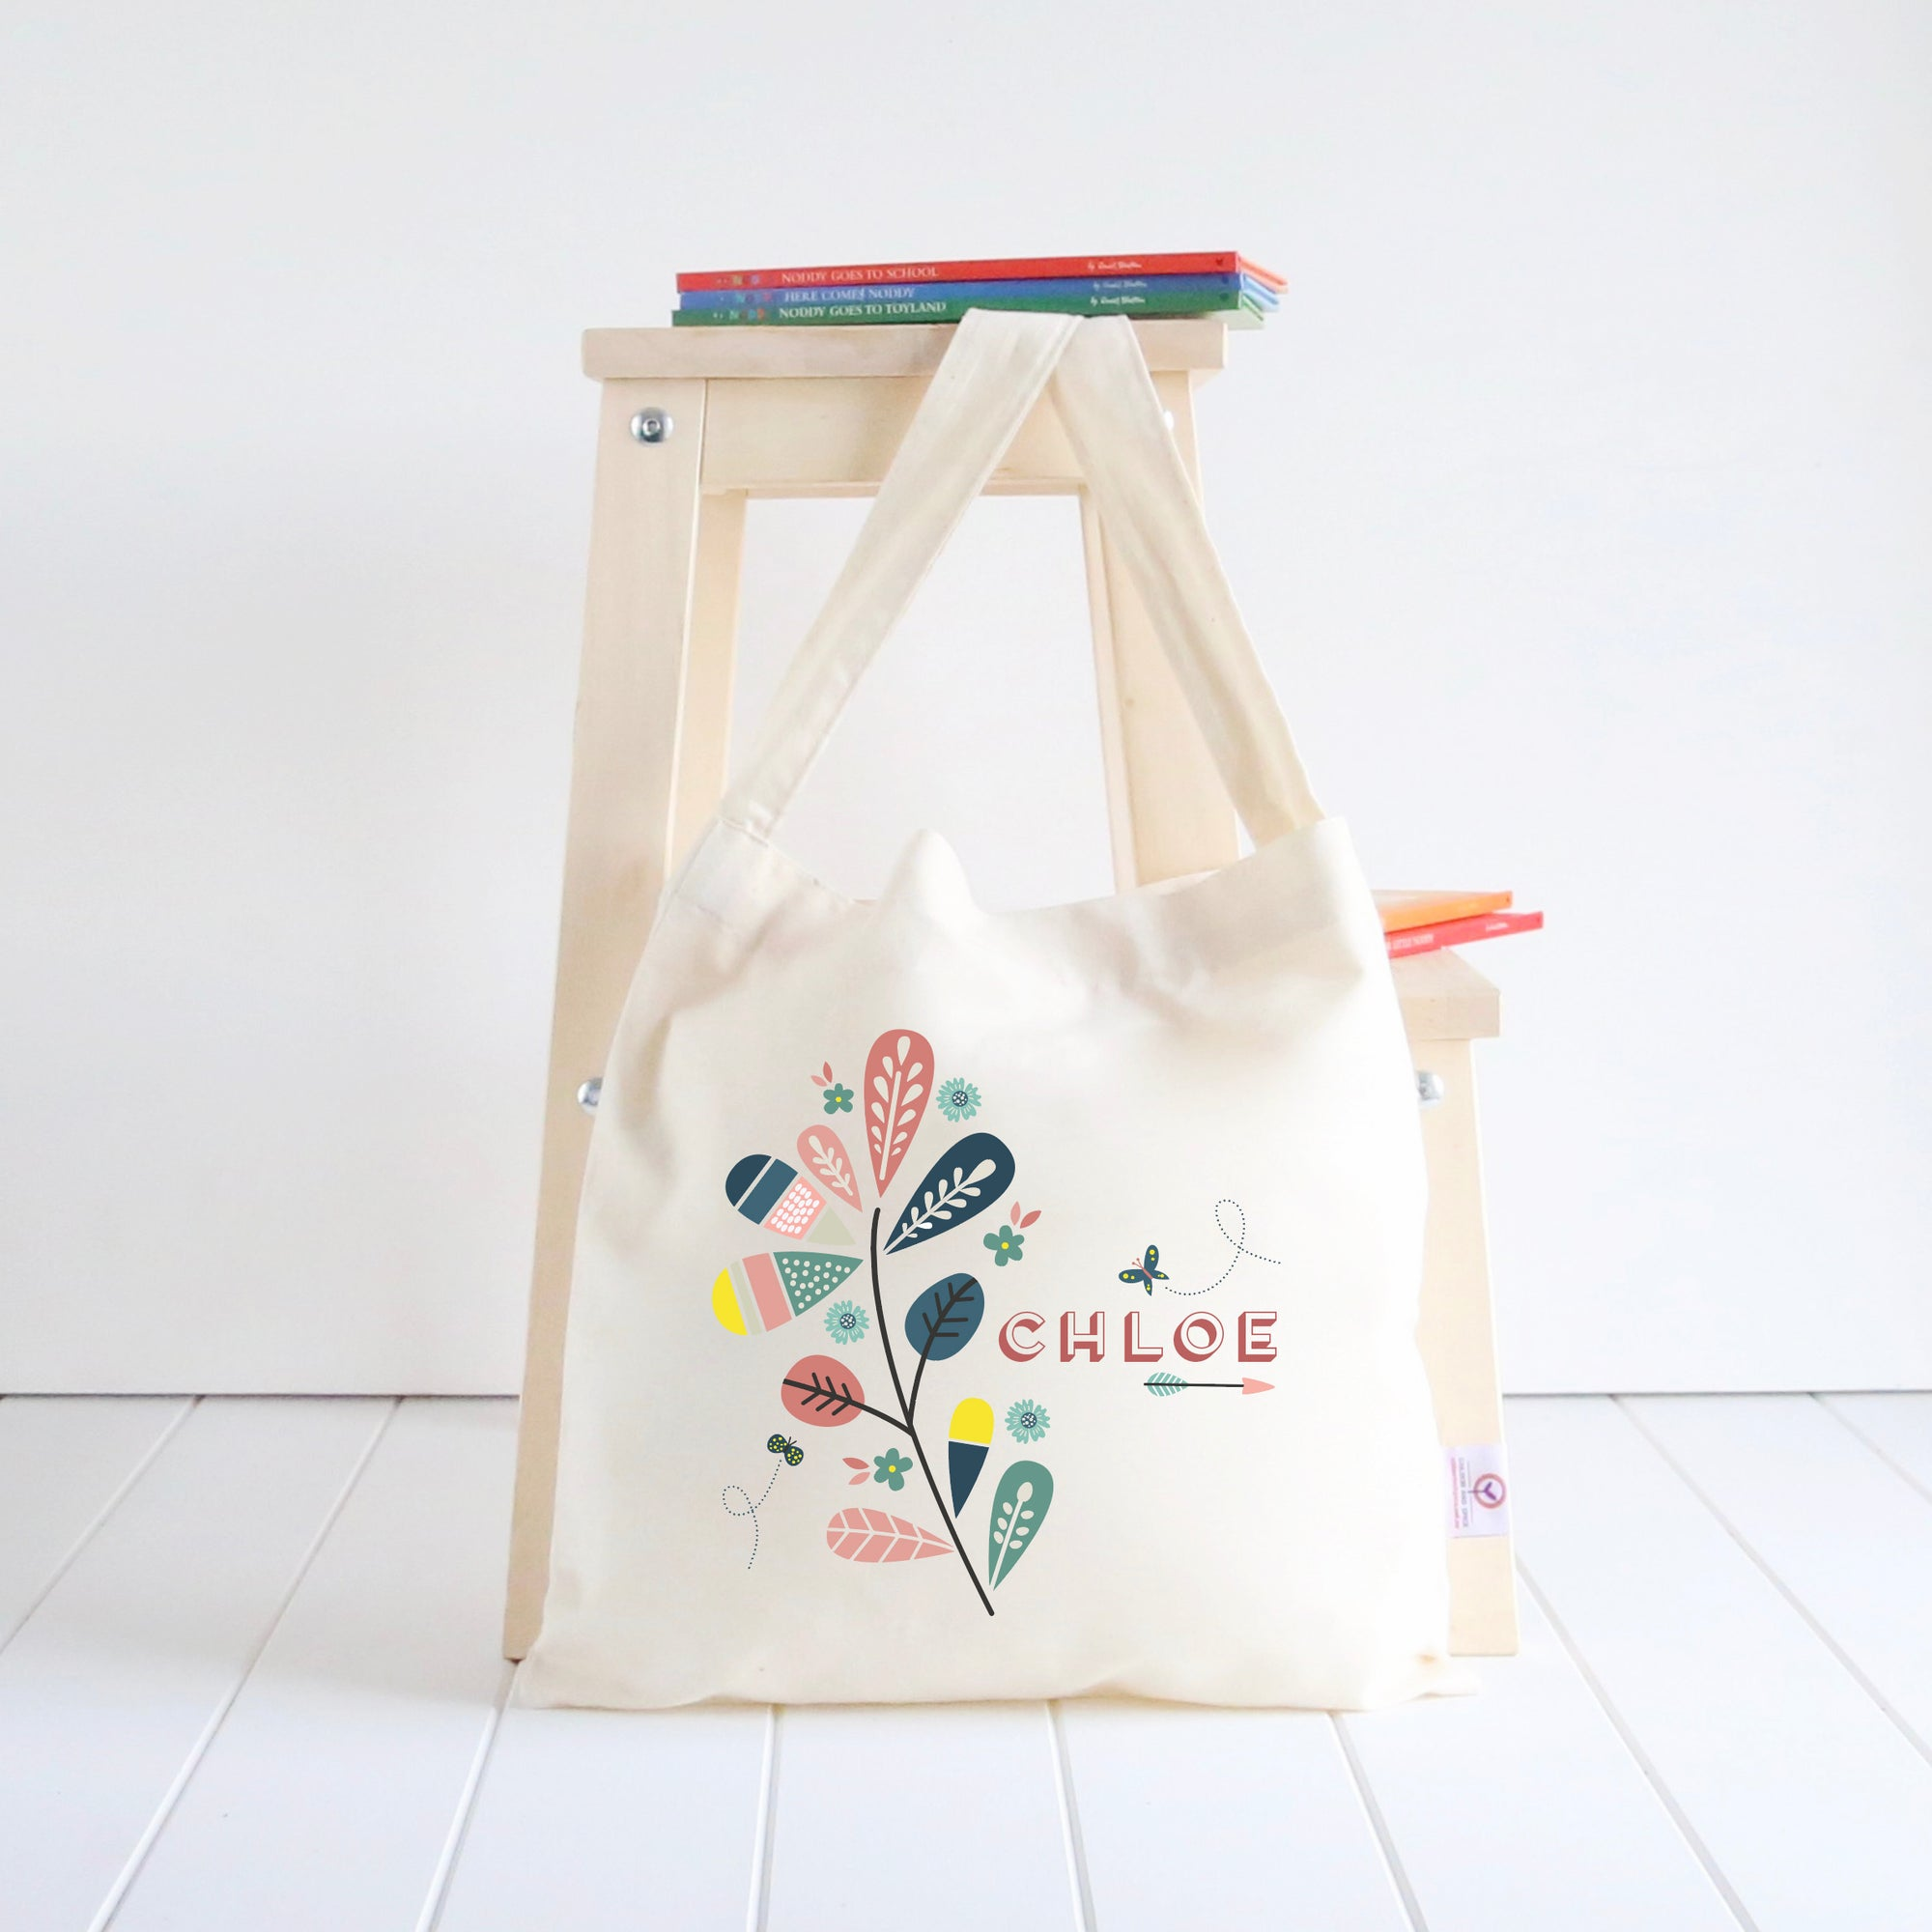 Foliage Library Bag